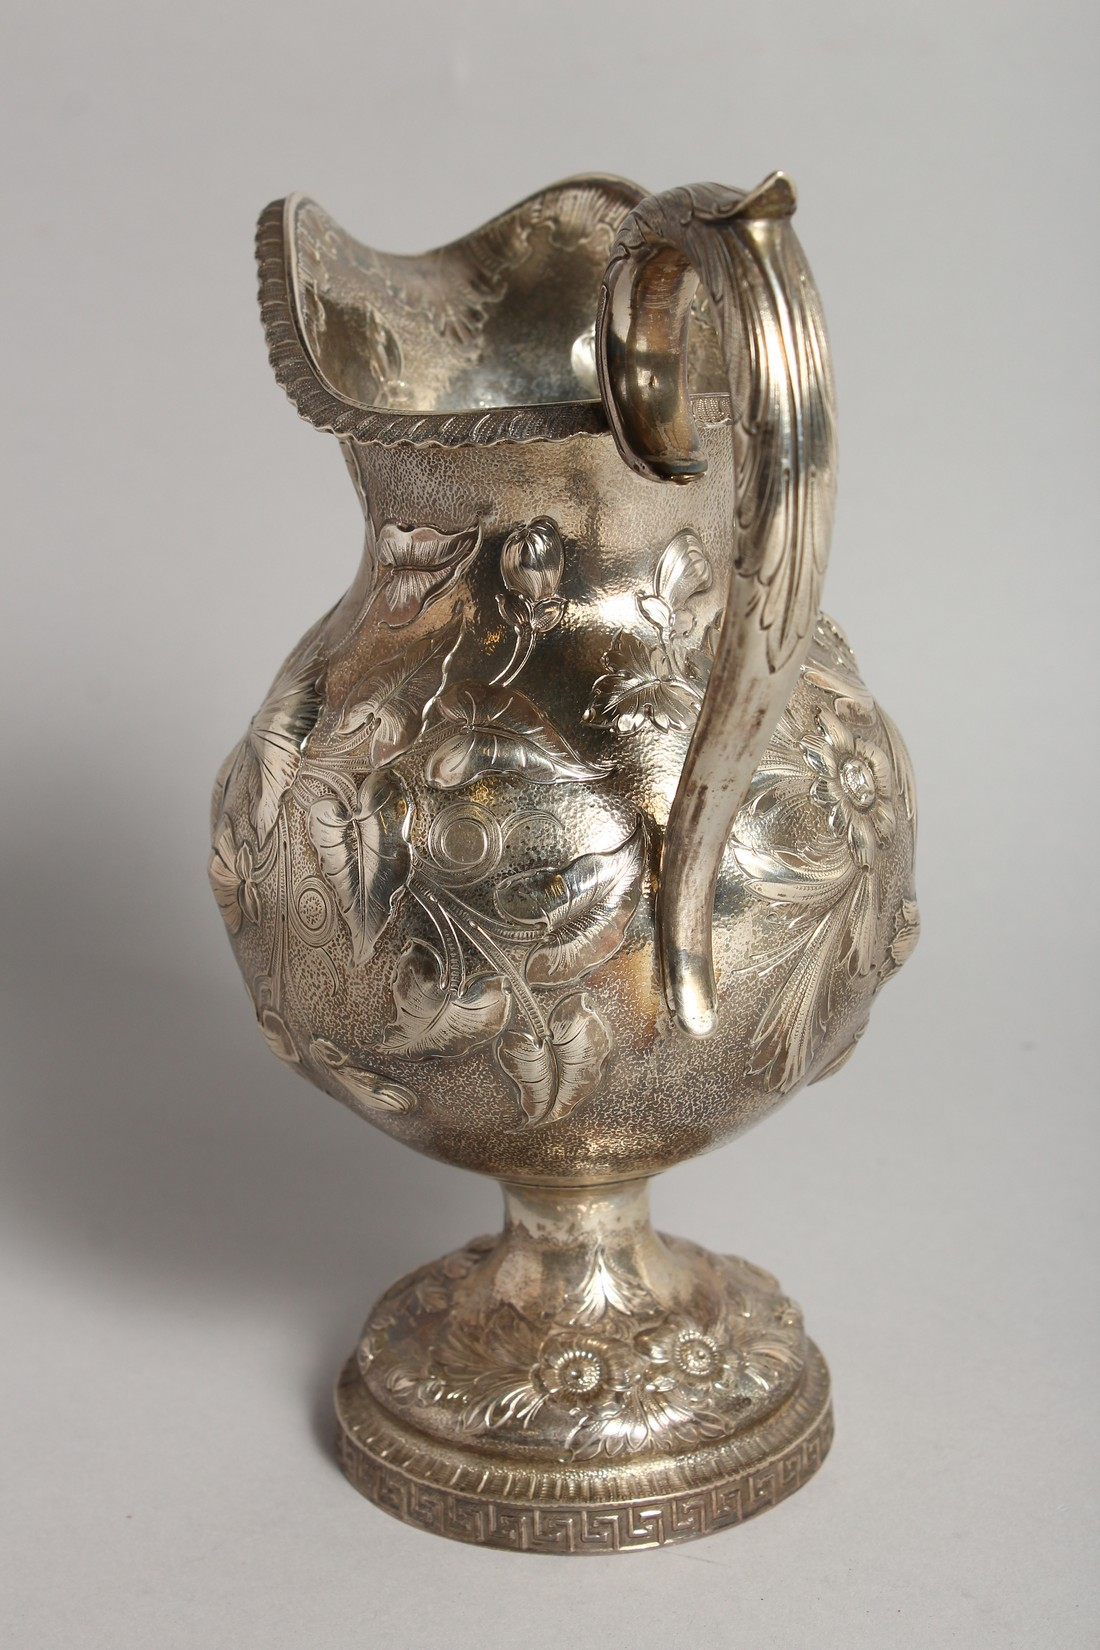 AN R & W WILSON 19TH CENTURY PHILADELPHIA SILVER JUG repousse with flowers and scrolls 8ins high, - Image 4 of 8